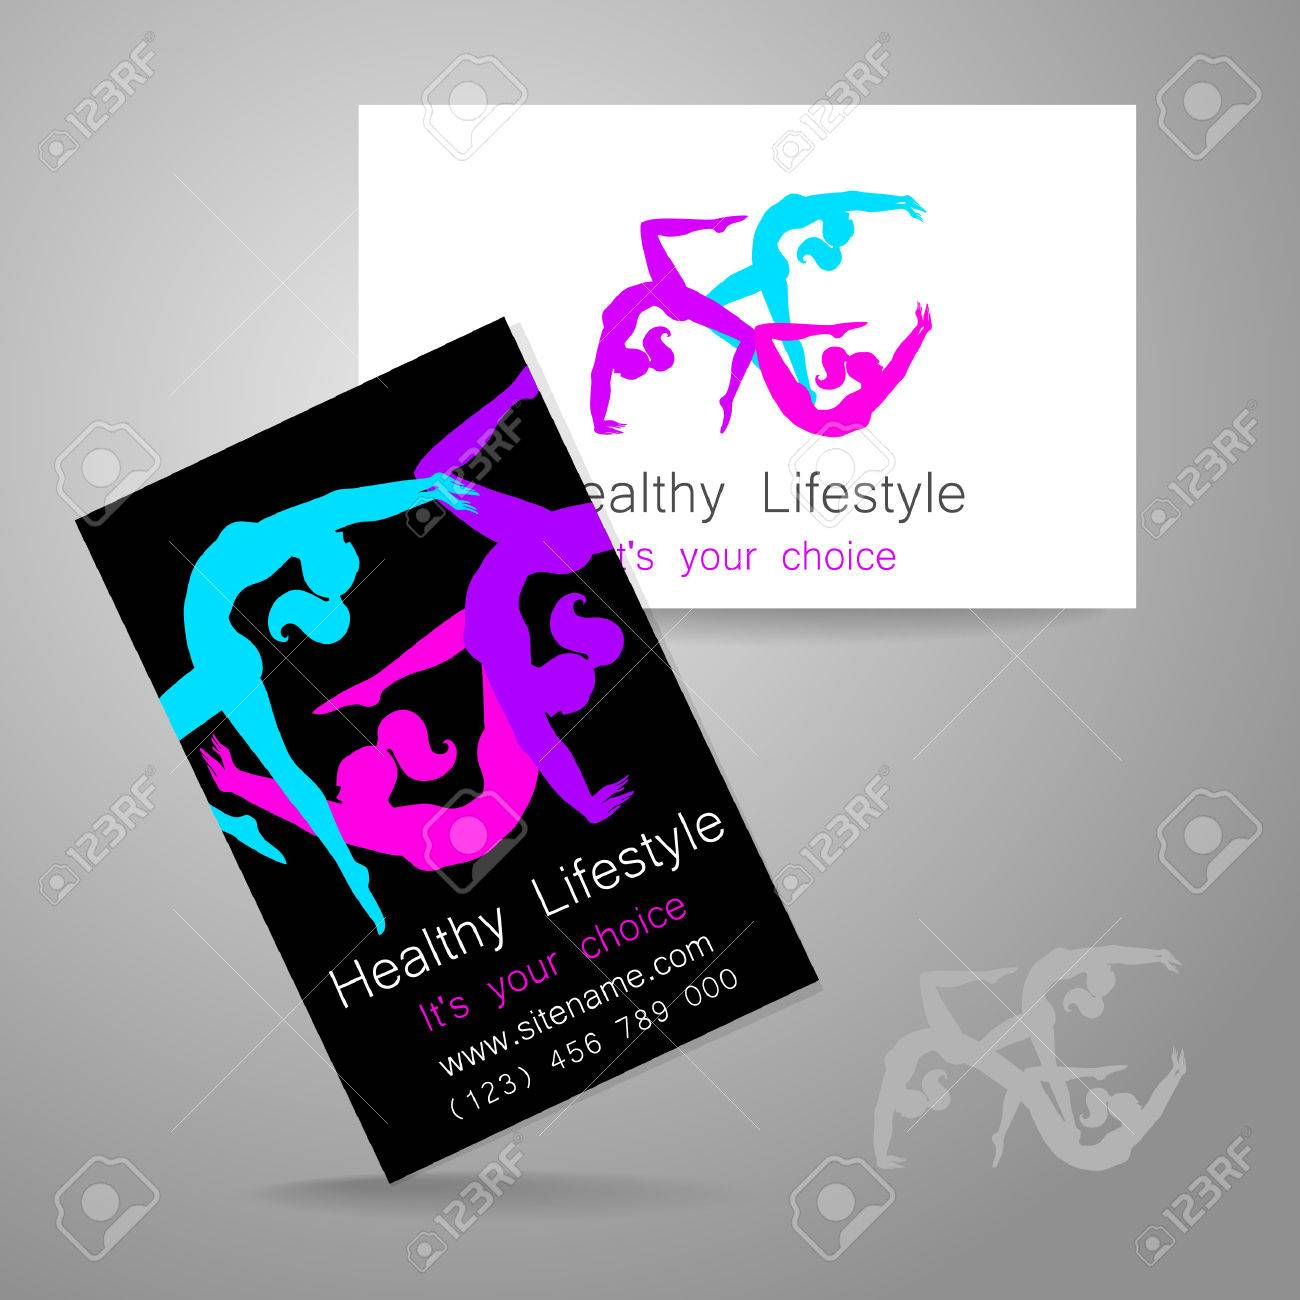 Fitness Logo Corporate Design Template Business Card Sports – Club Card Design